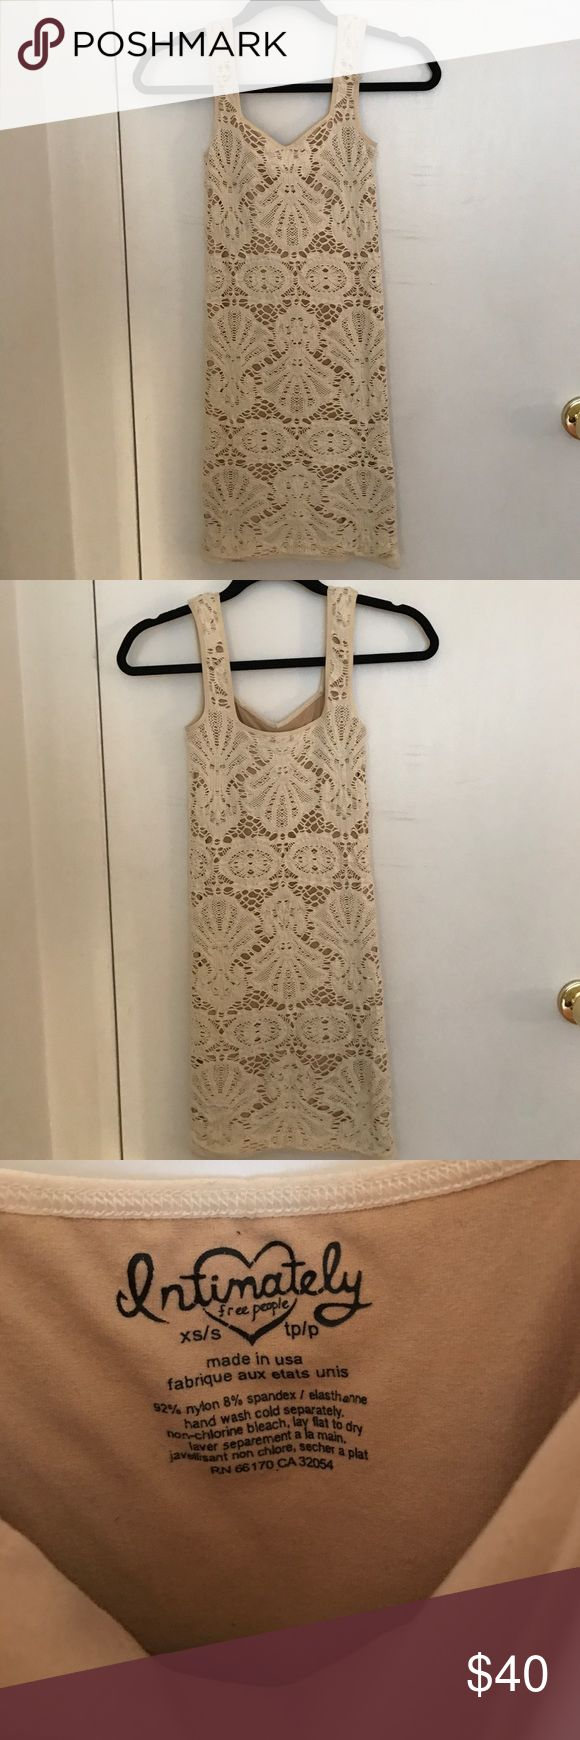 Cream and beige mini dress Free people mini dress. Worn once in excellent condition. Form fitting and flattering! Free People Dresses Mini